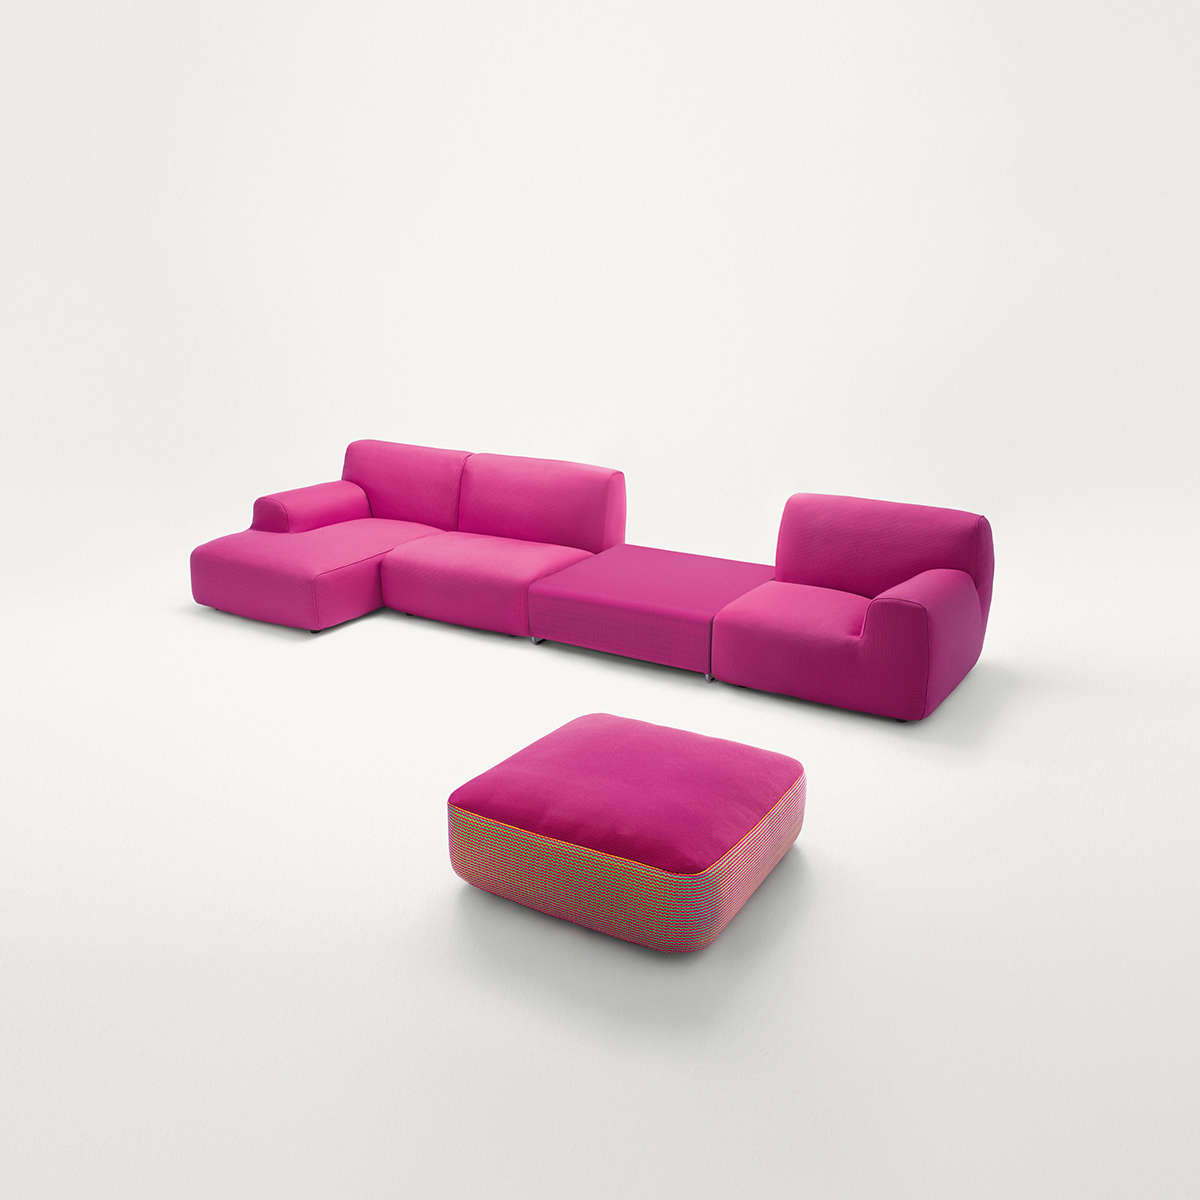 Paola Lenti Welcome Hr 3